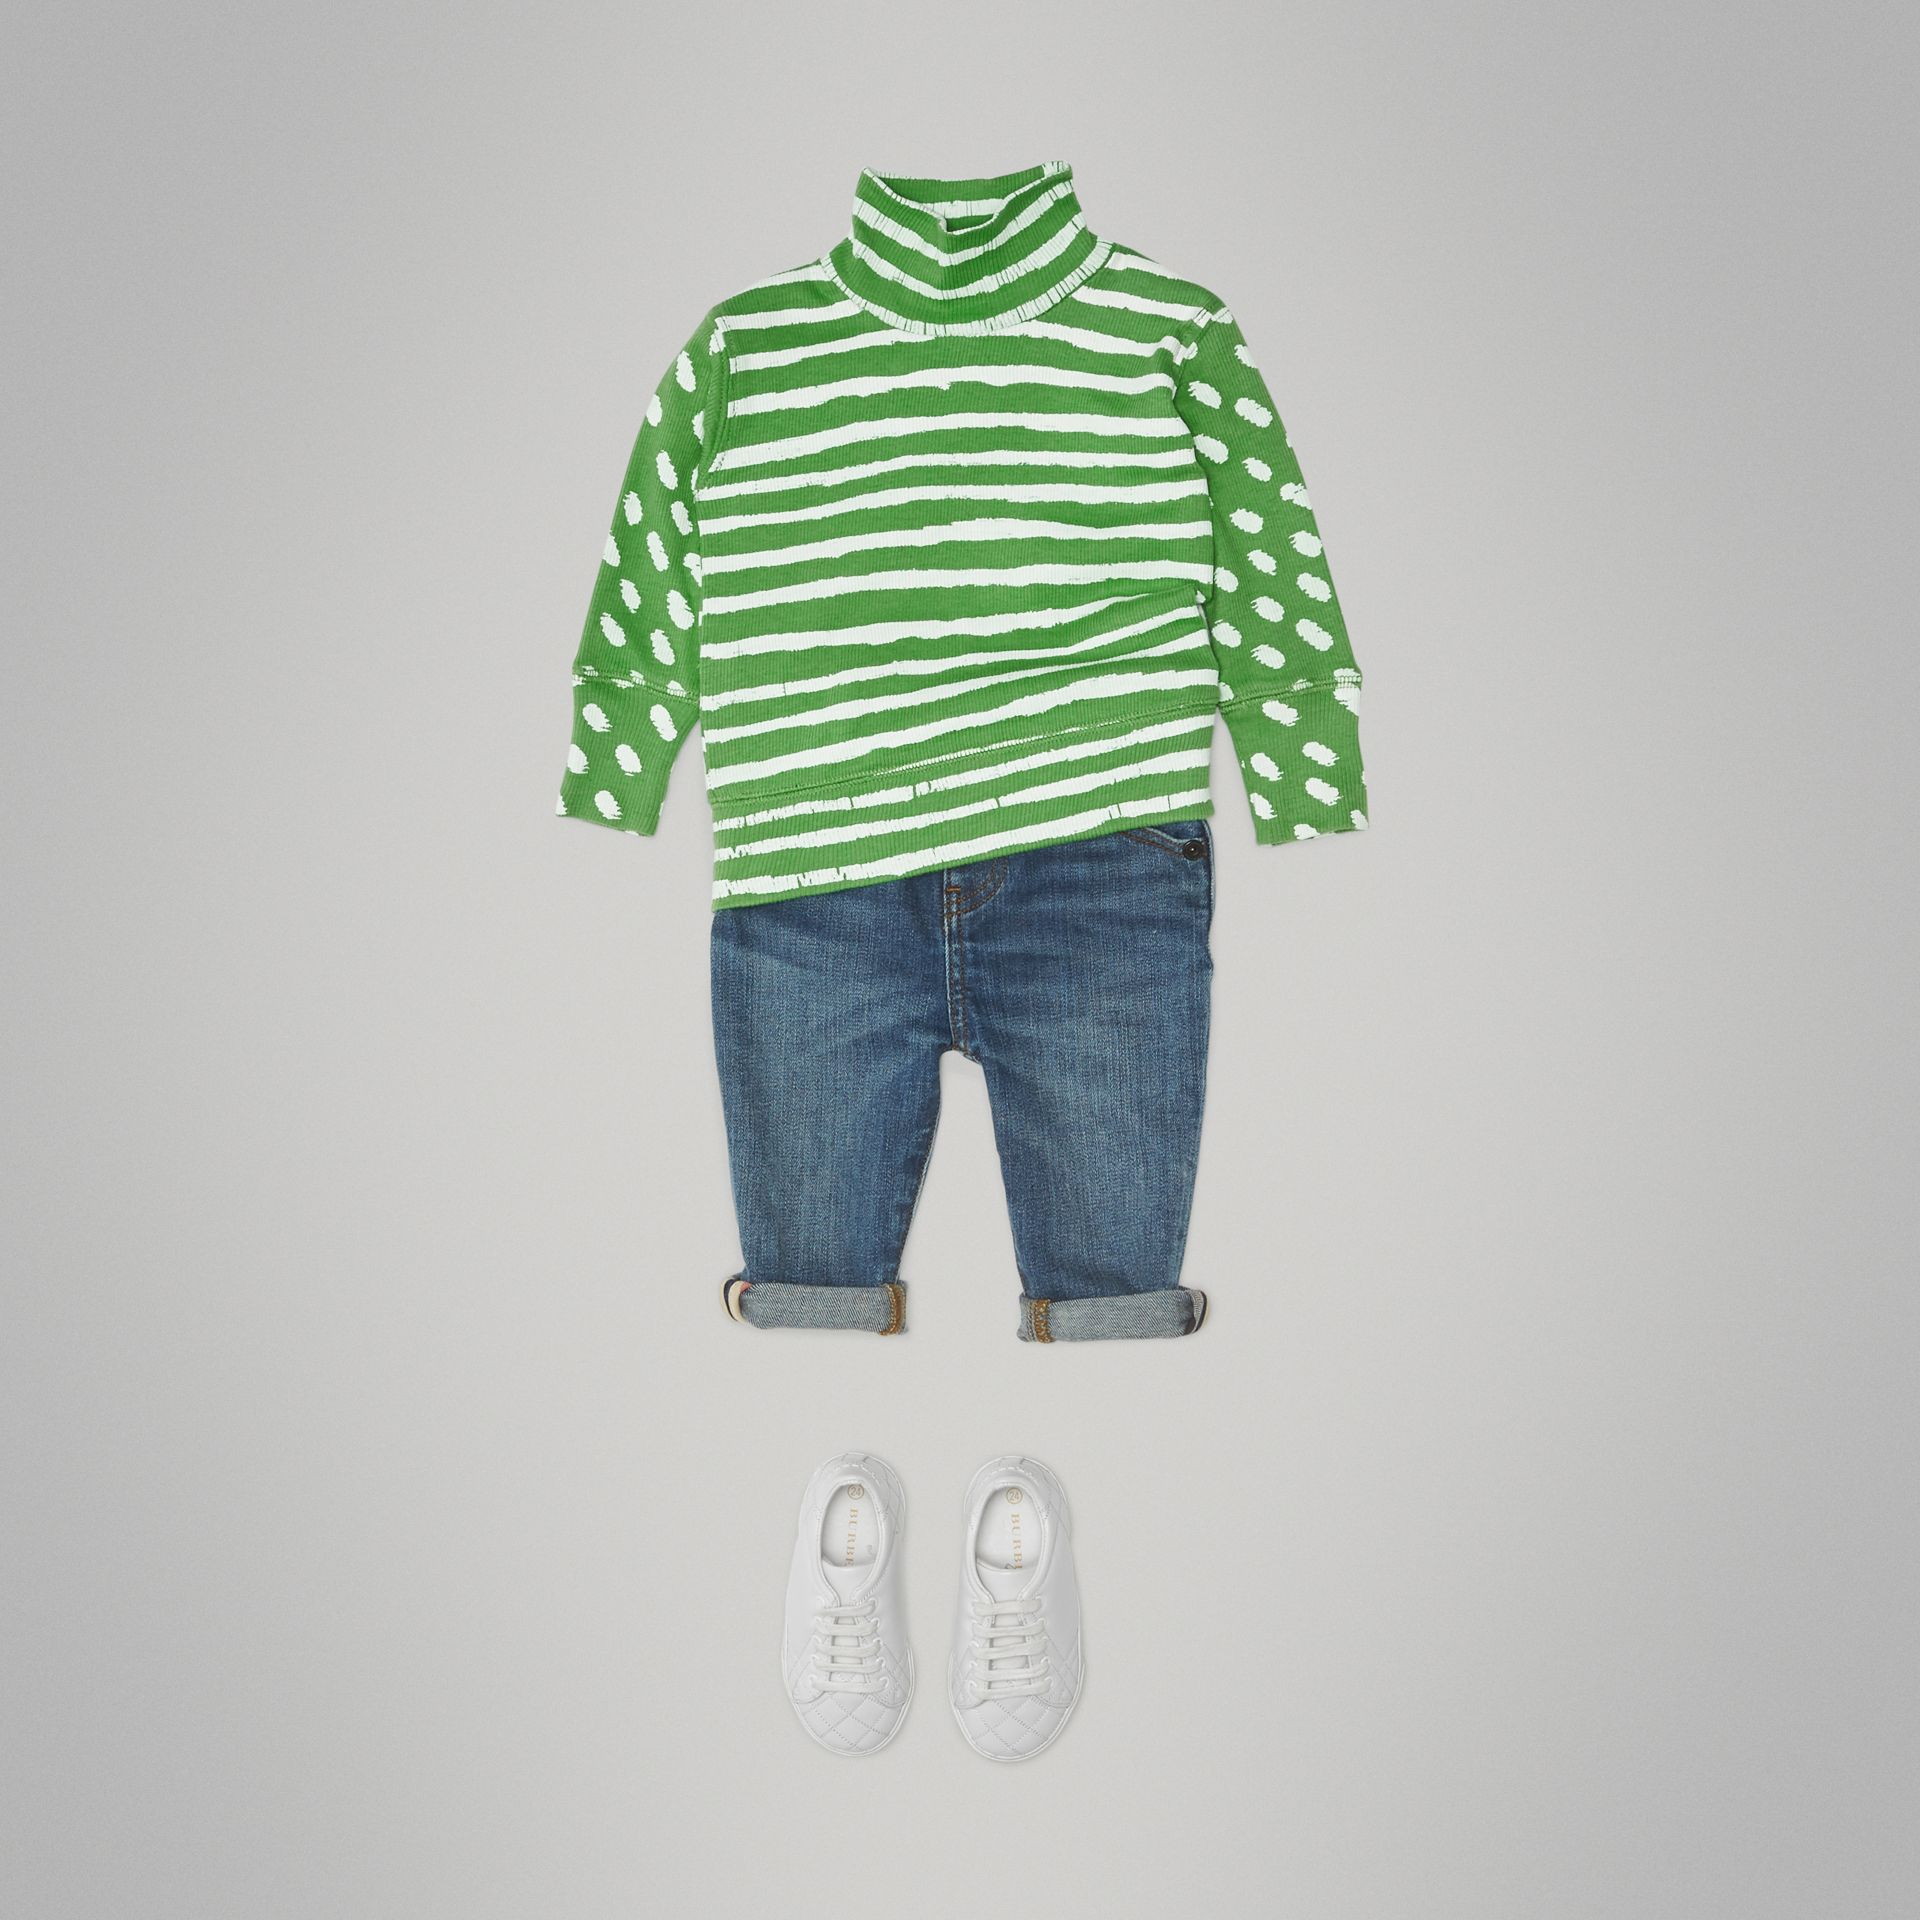 Roll-neck Spot and Stripe Print Cotton Top in Bright Green - Children | Burberry - gallery image 2